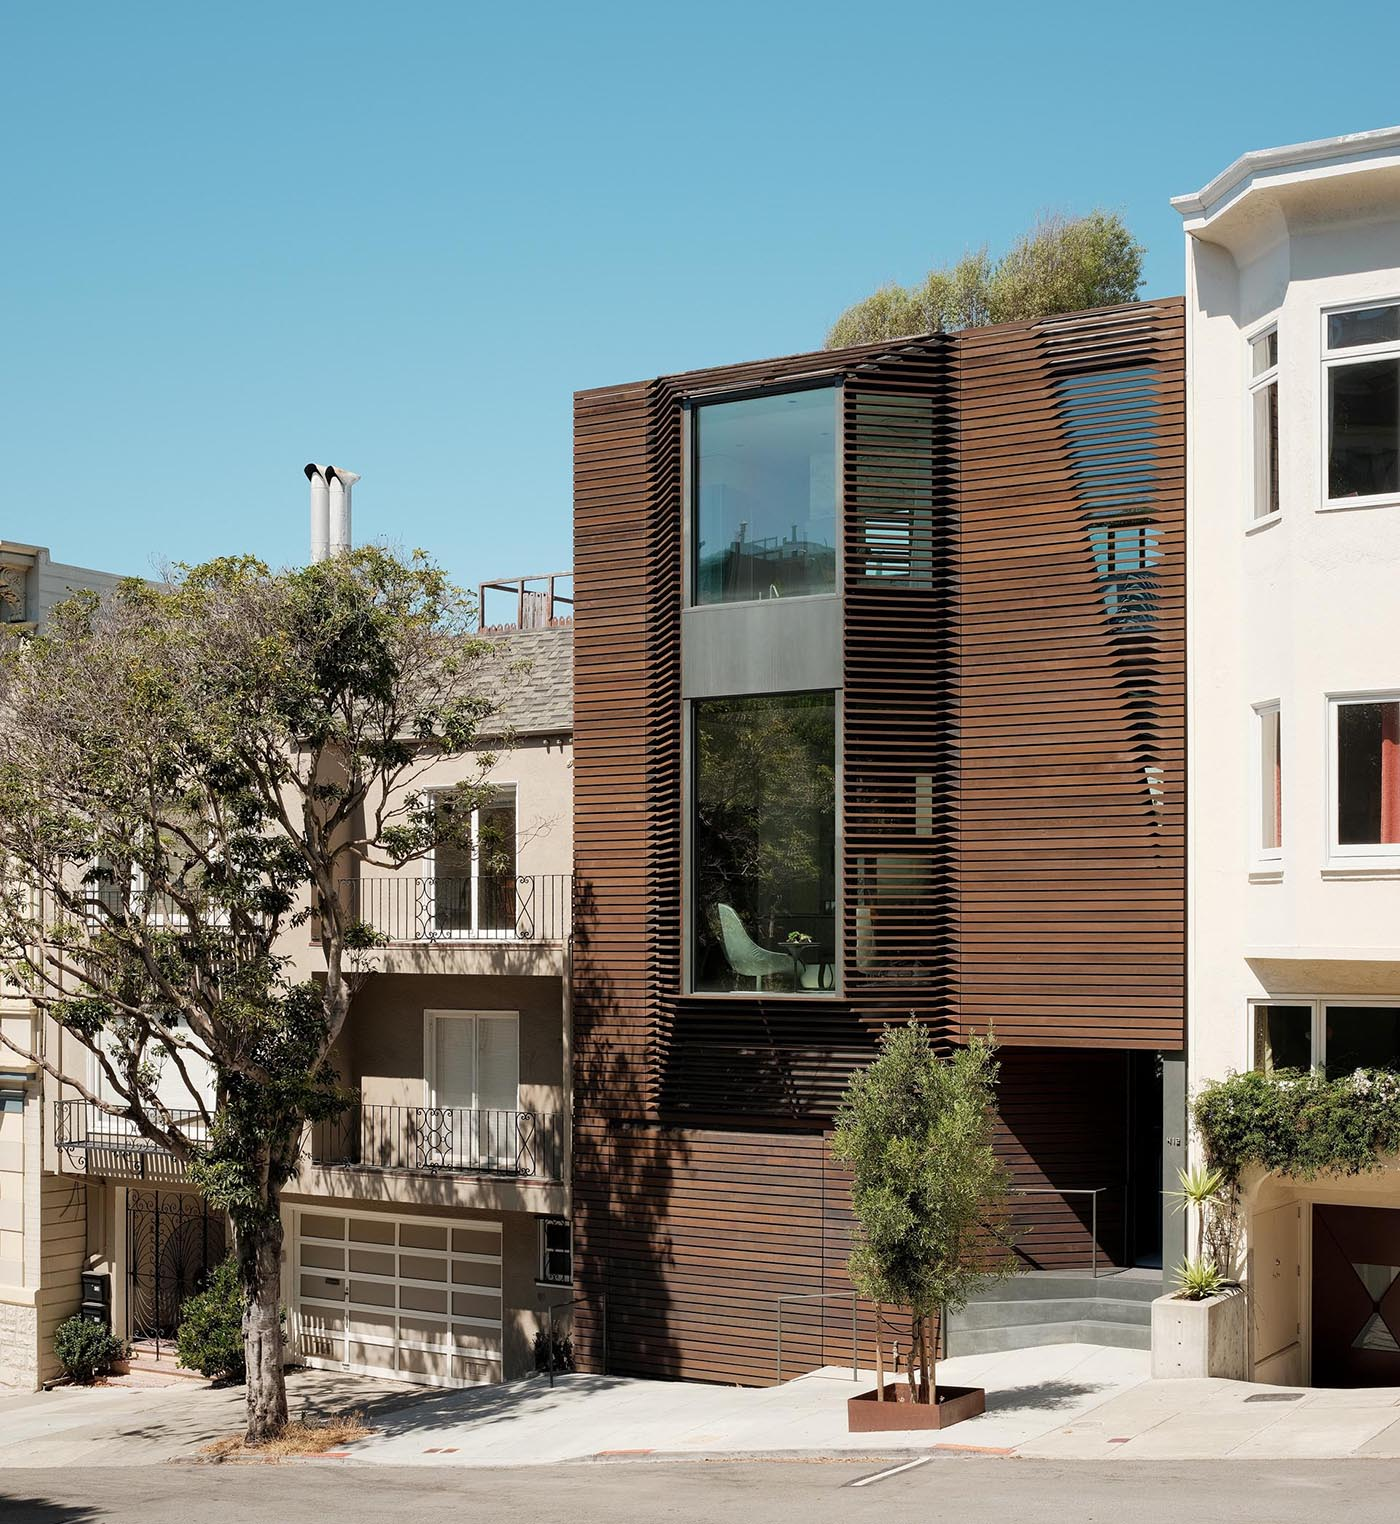 A modern home with a wood exterior and bay windows.